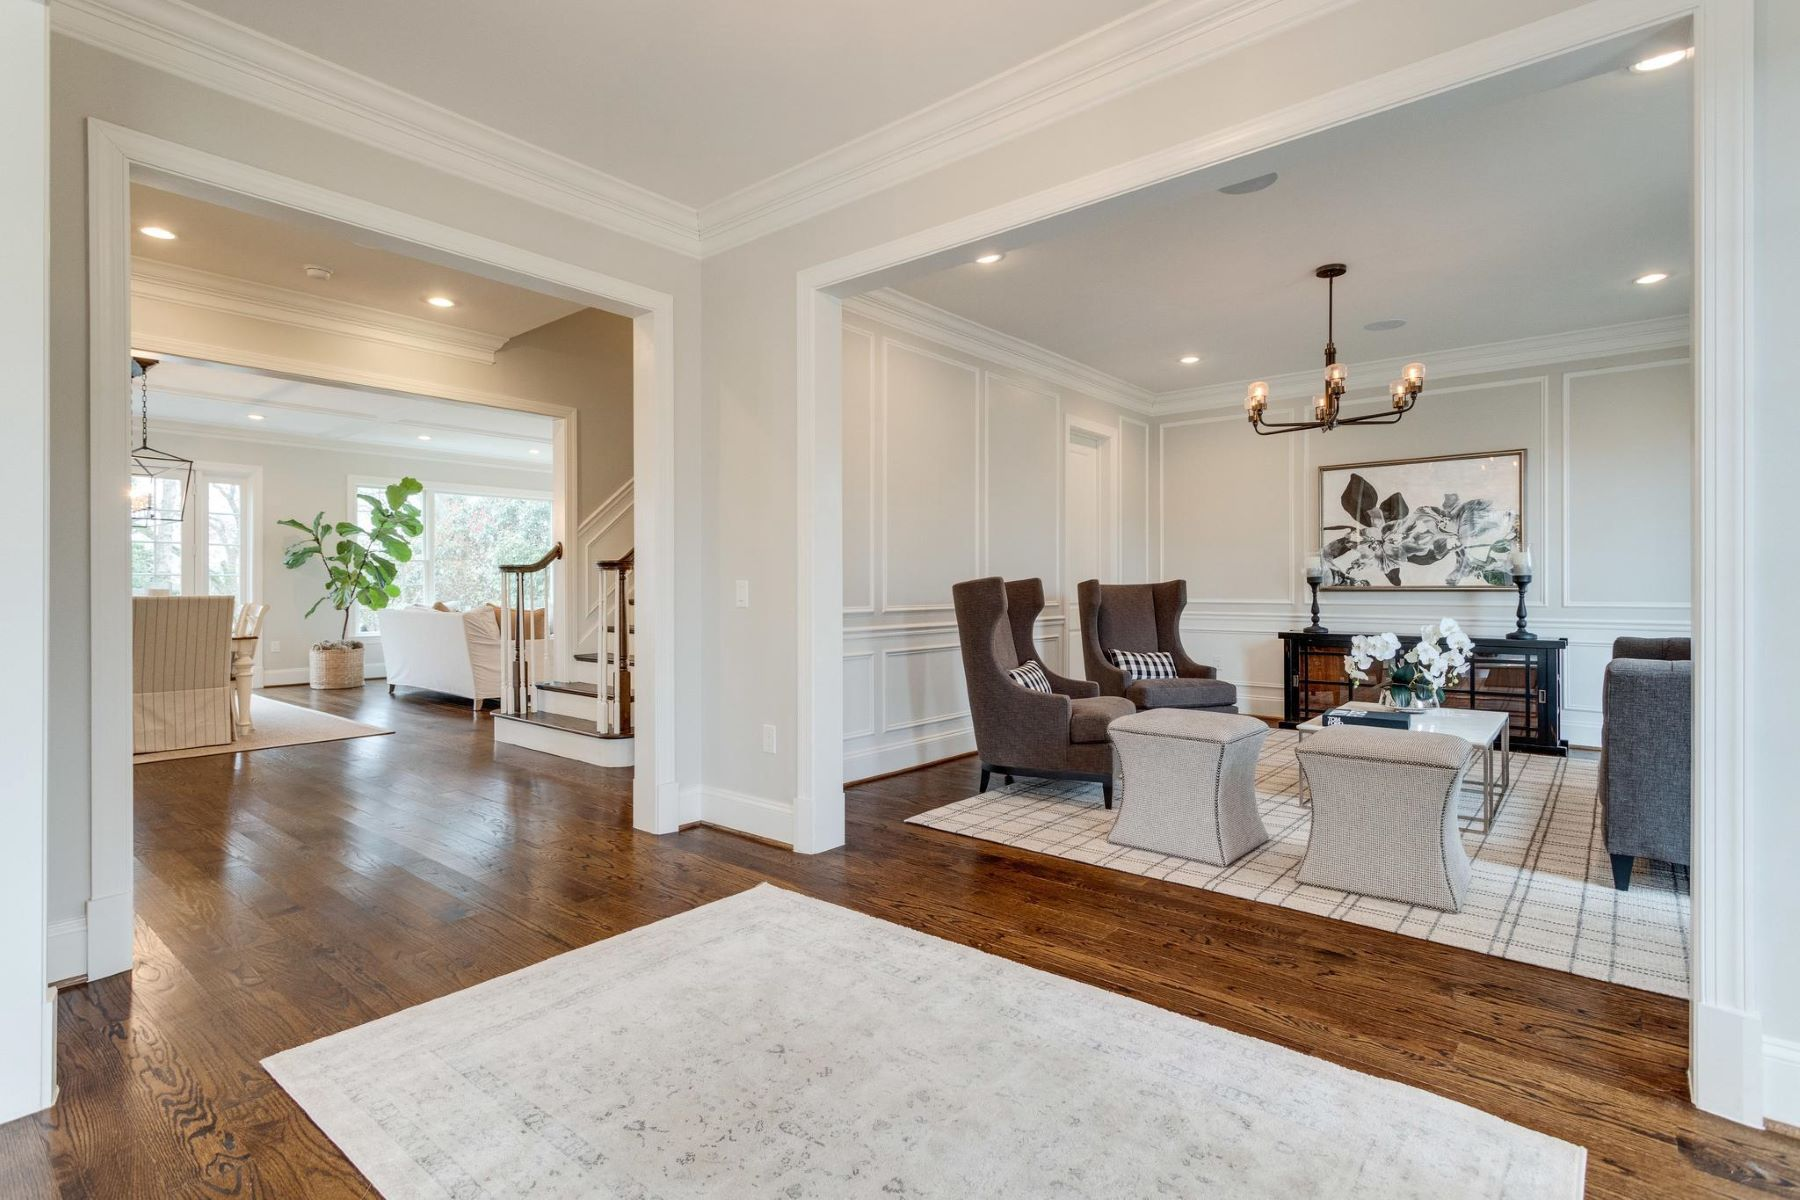 Single Family Homes for Sale at 5313 Blackistone Rd Bethesda, Maryland 20816 United States